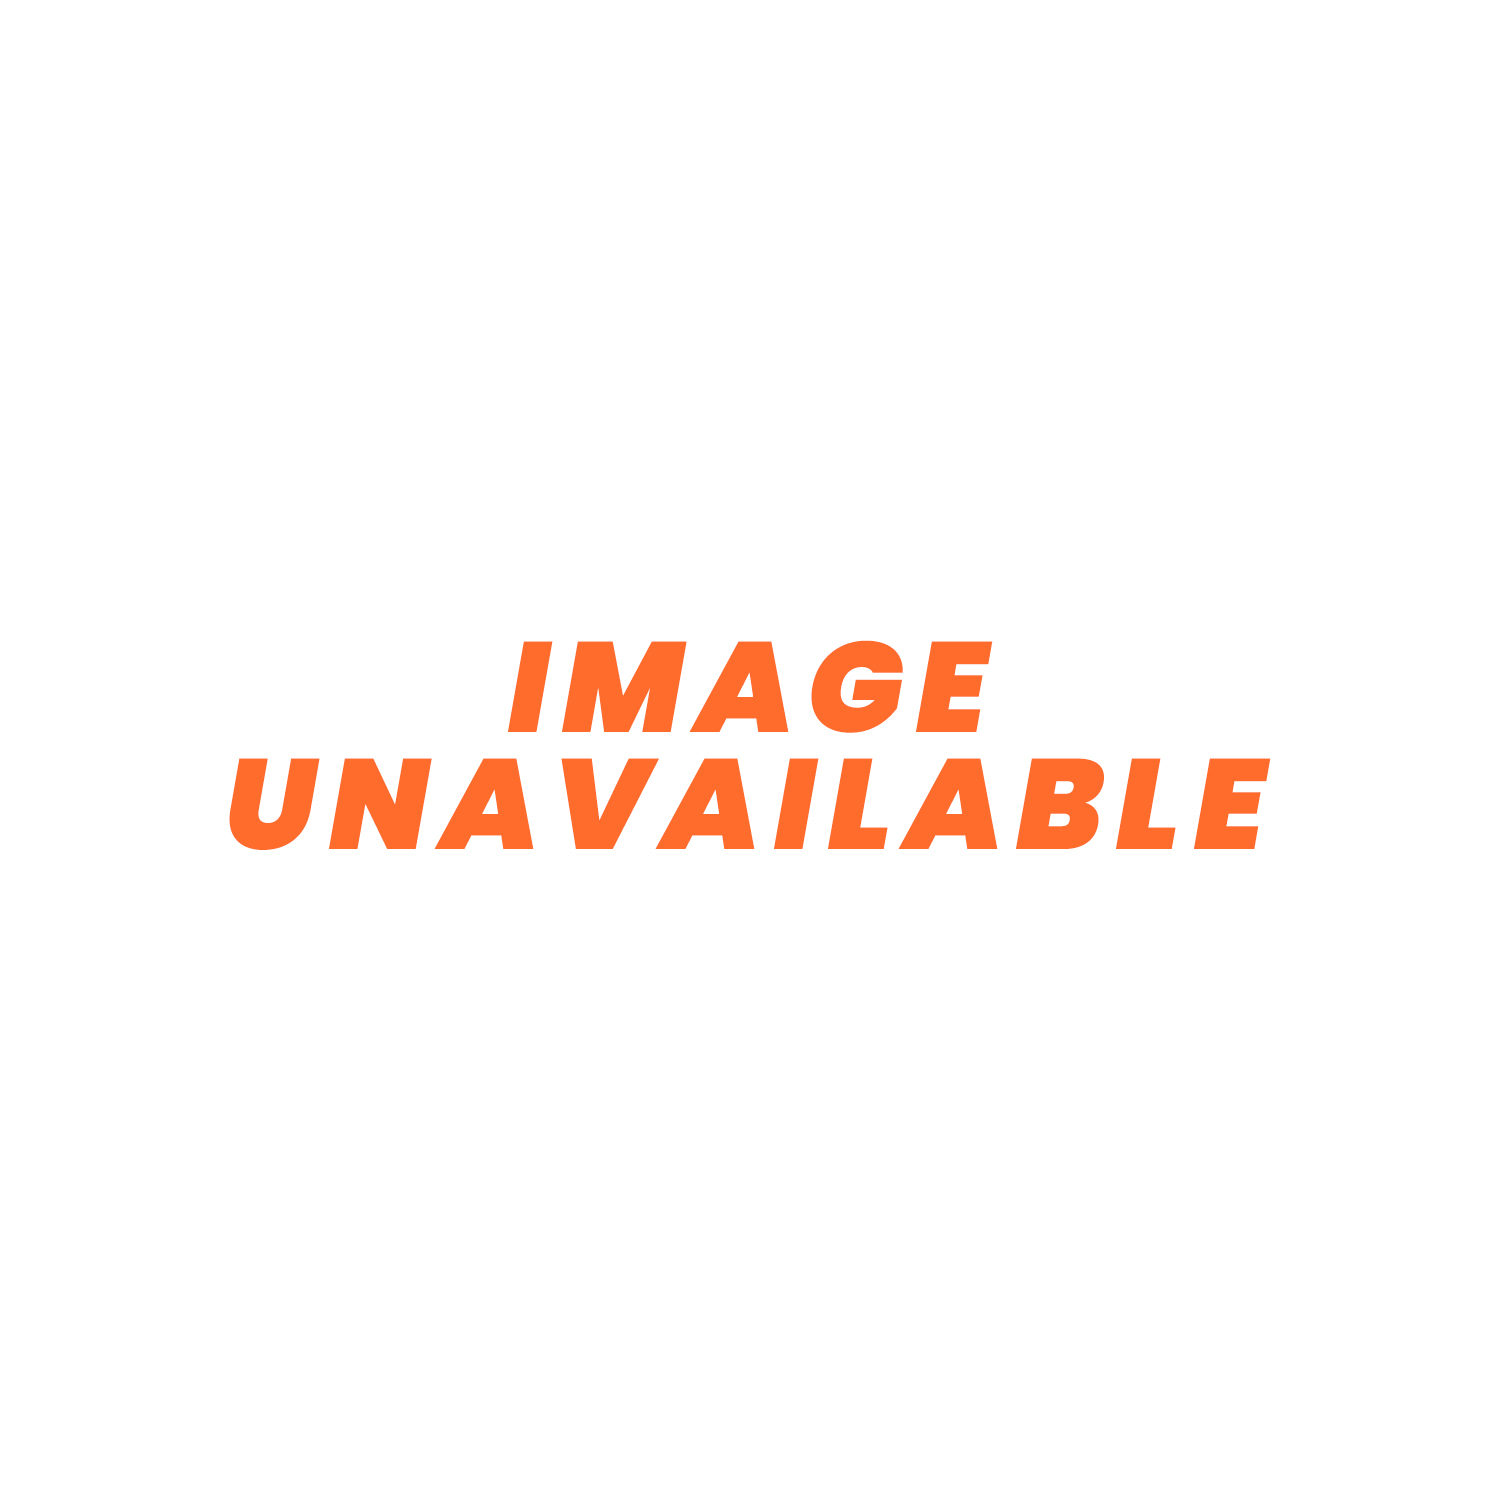 "SPAL Brushless Radiator Fan - 10.0"" (255mm) VA109-BBL330P/N-109A/SH 1424cfm"